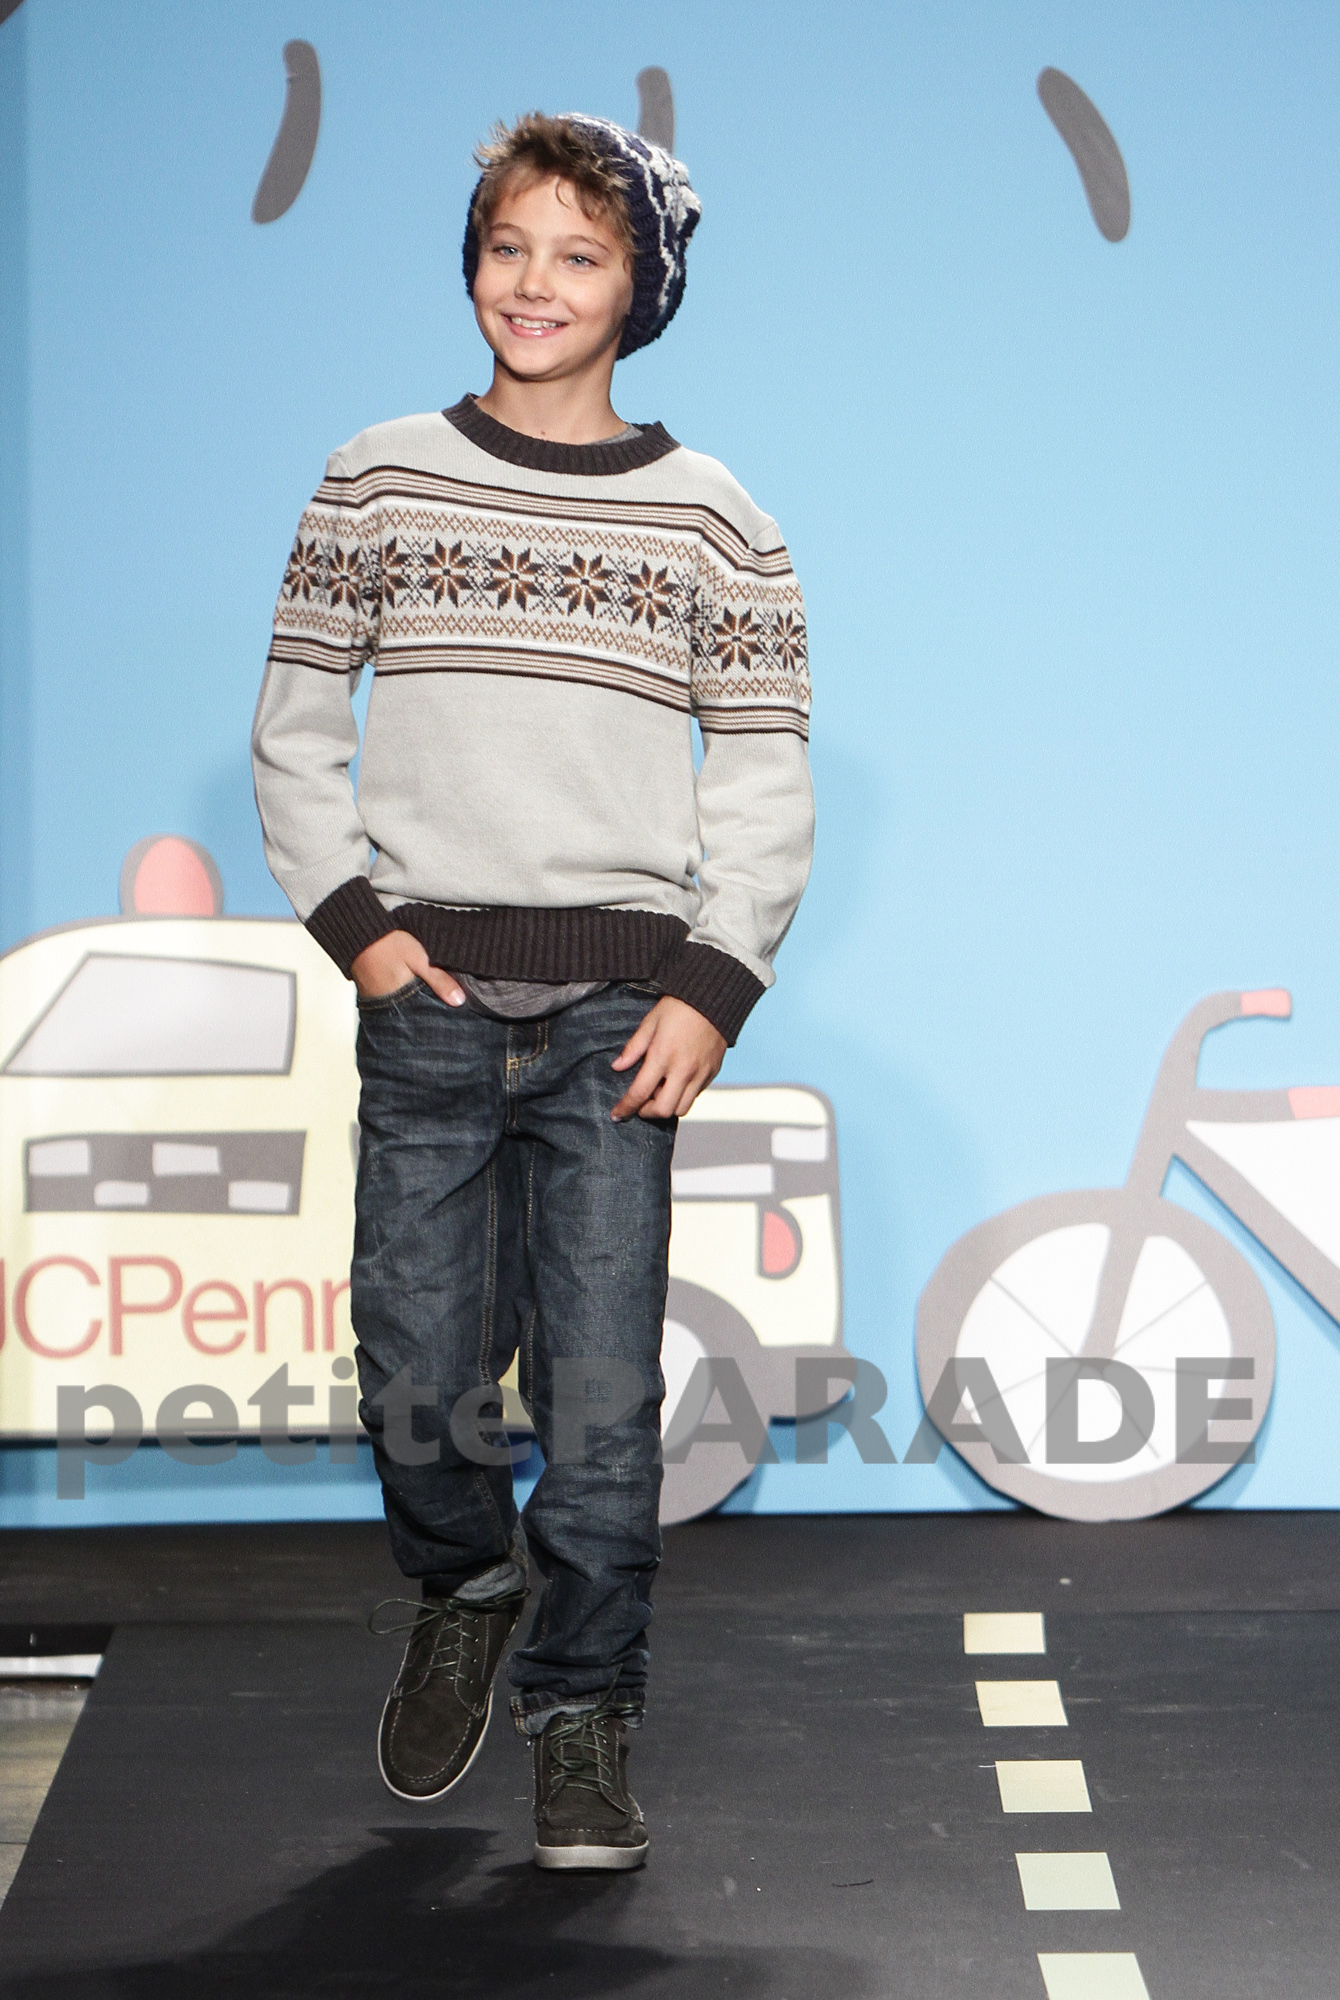 JOE Fresh Kids for JCPenney